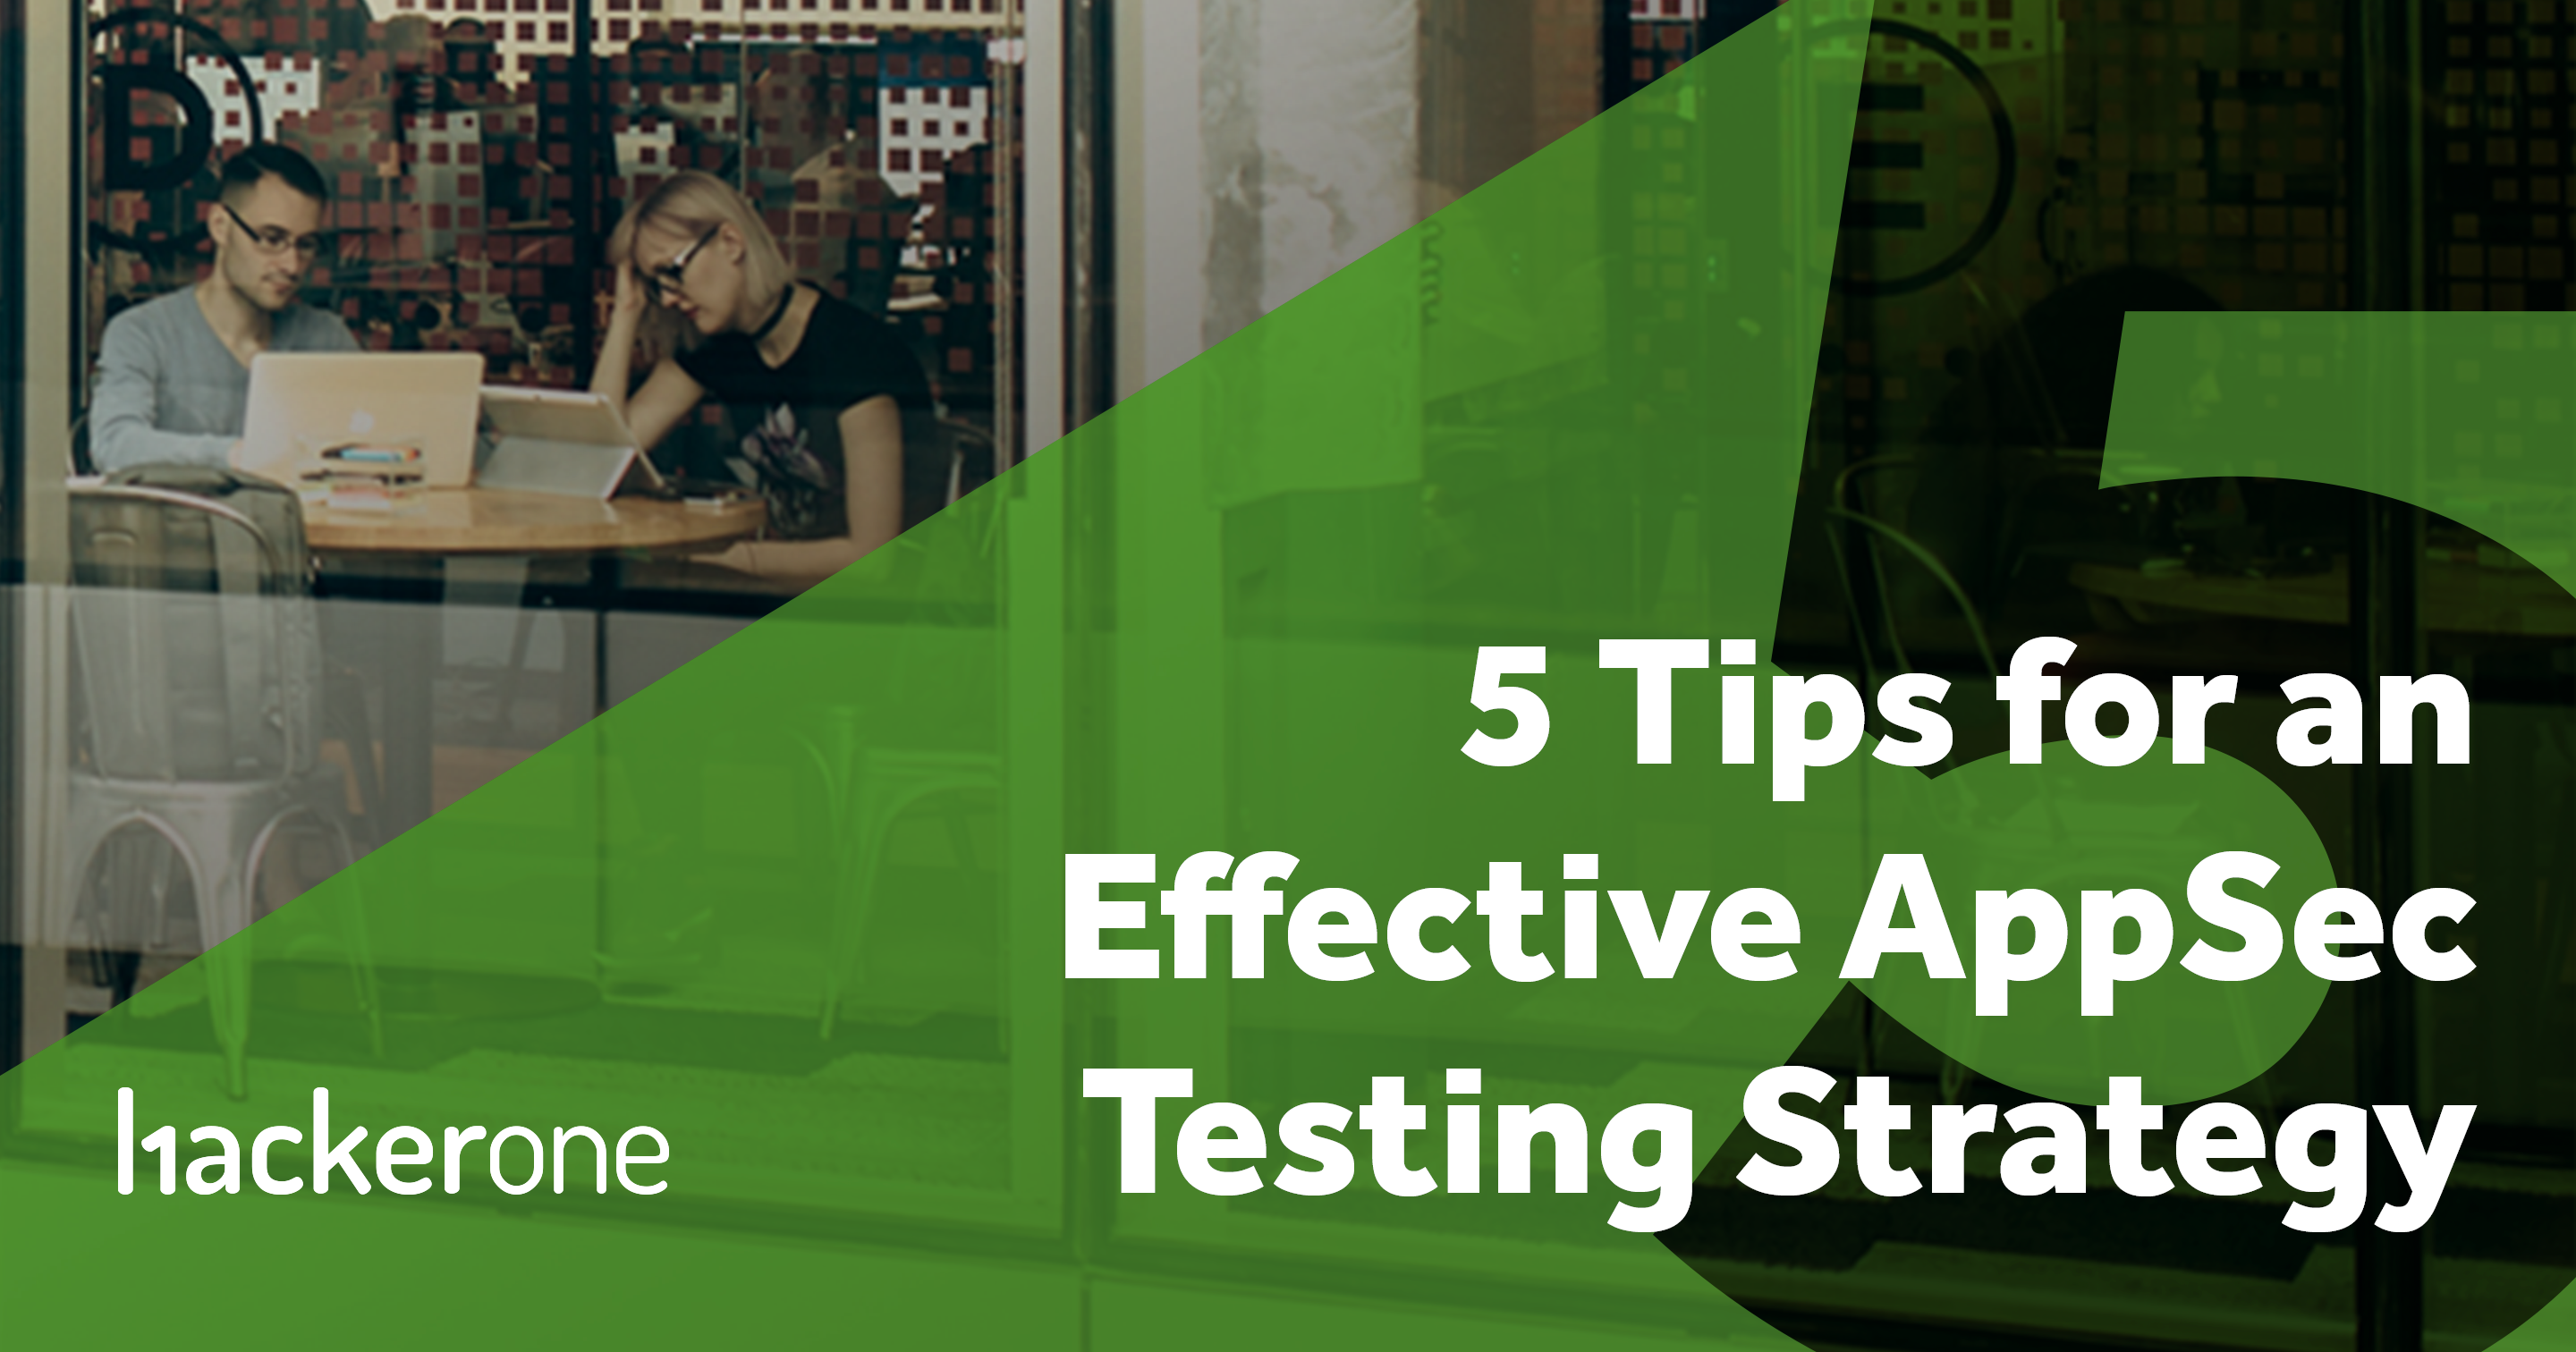 5 Tips for an Effective AppSec Testing Strategy